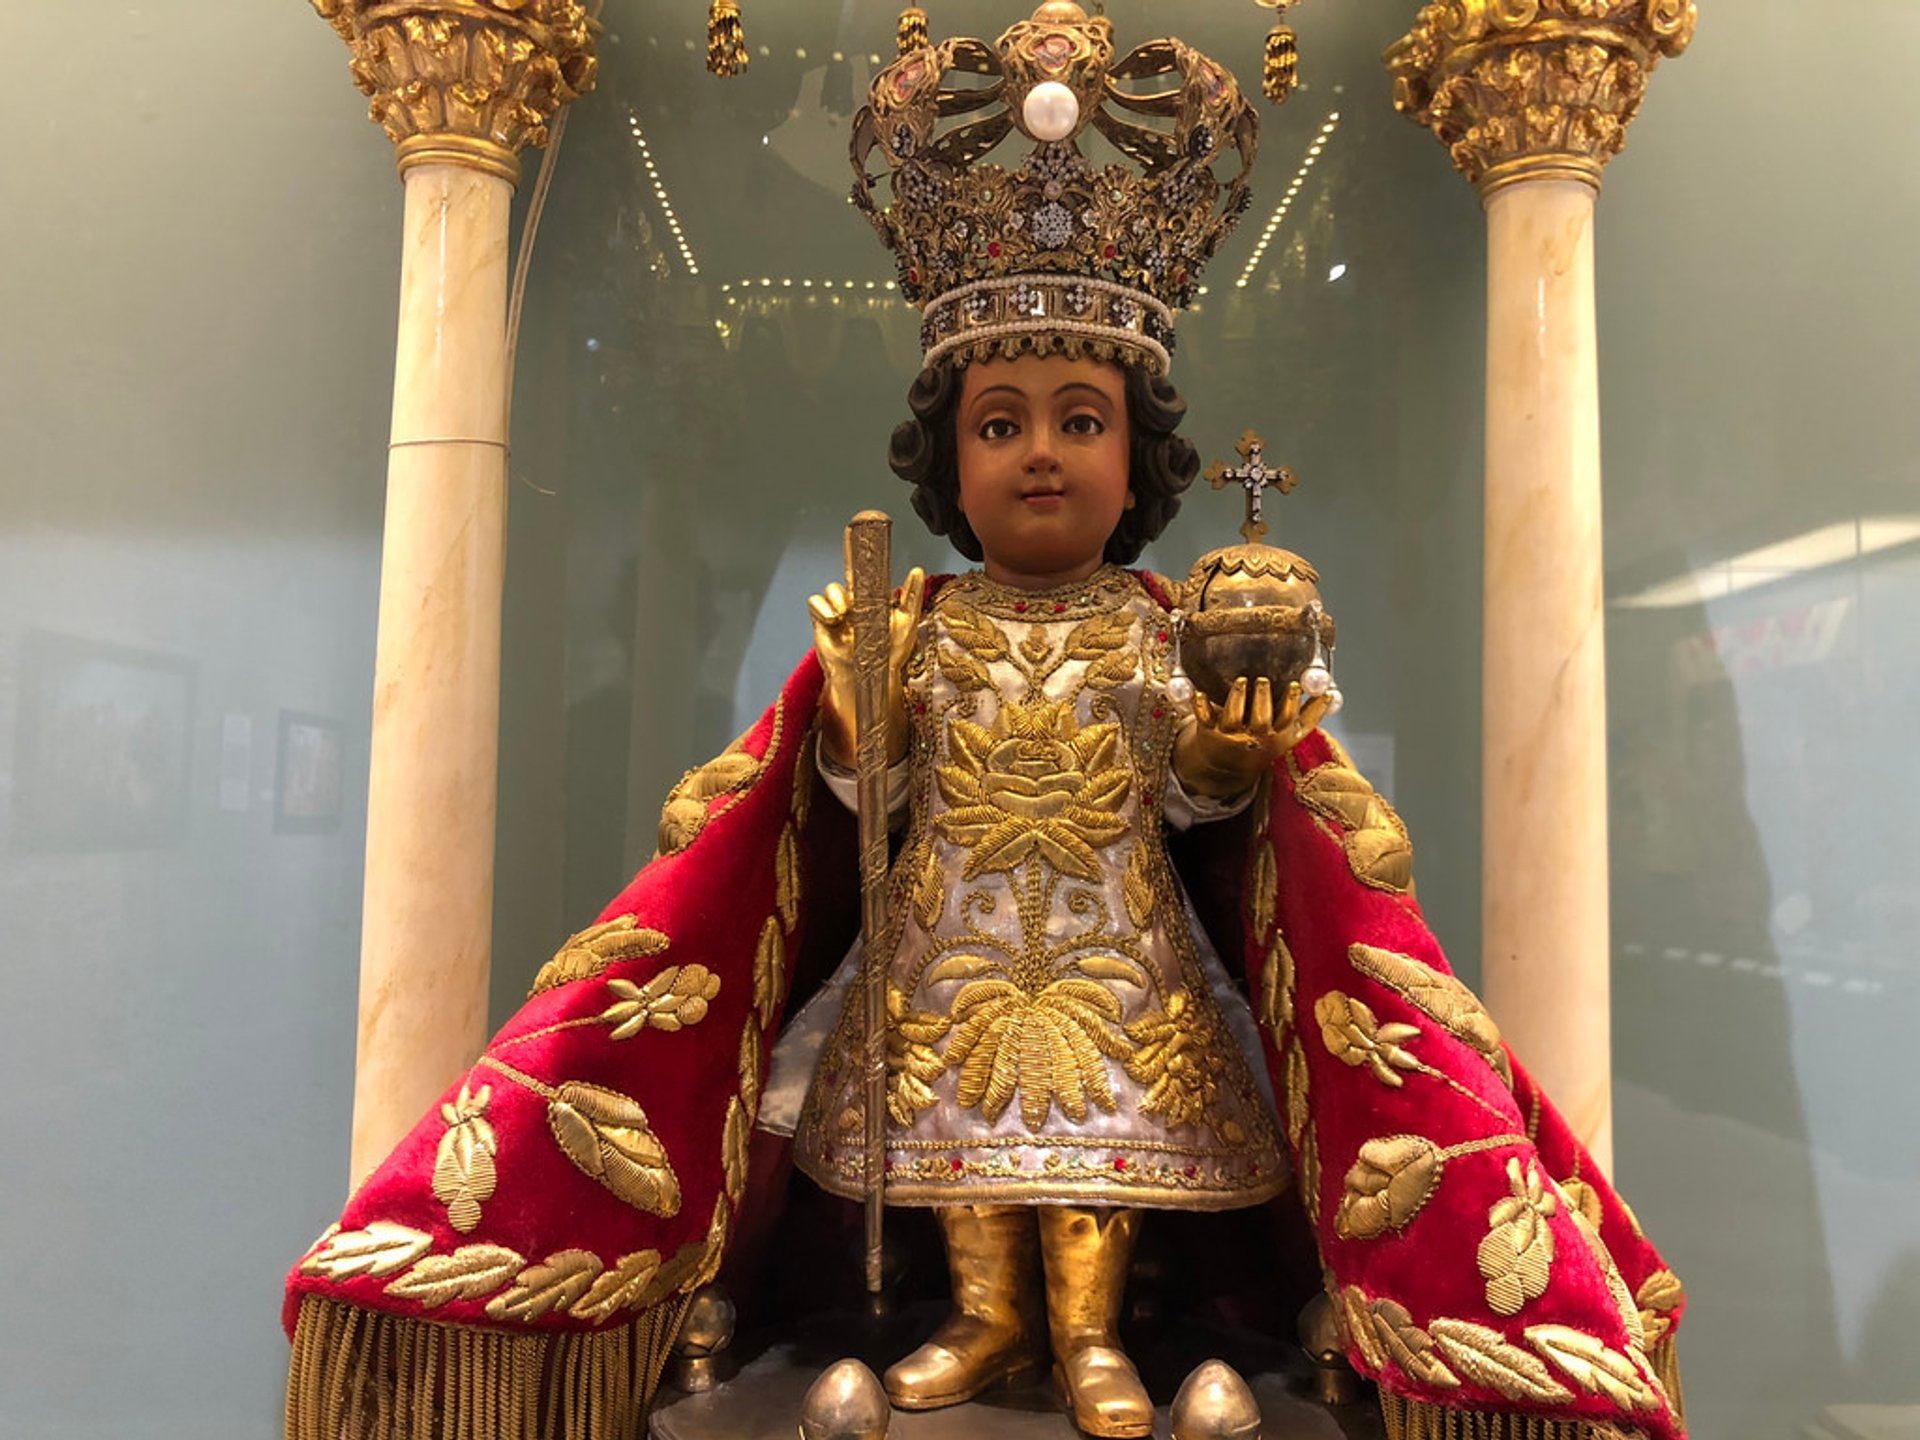 Santo Niño de Cebú in Philippines 2019 - Best Time